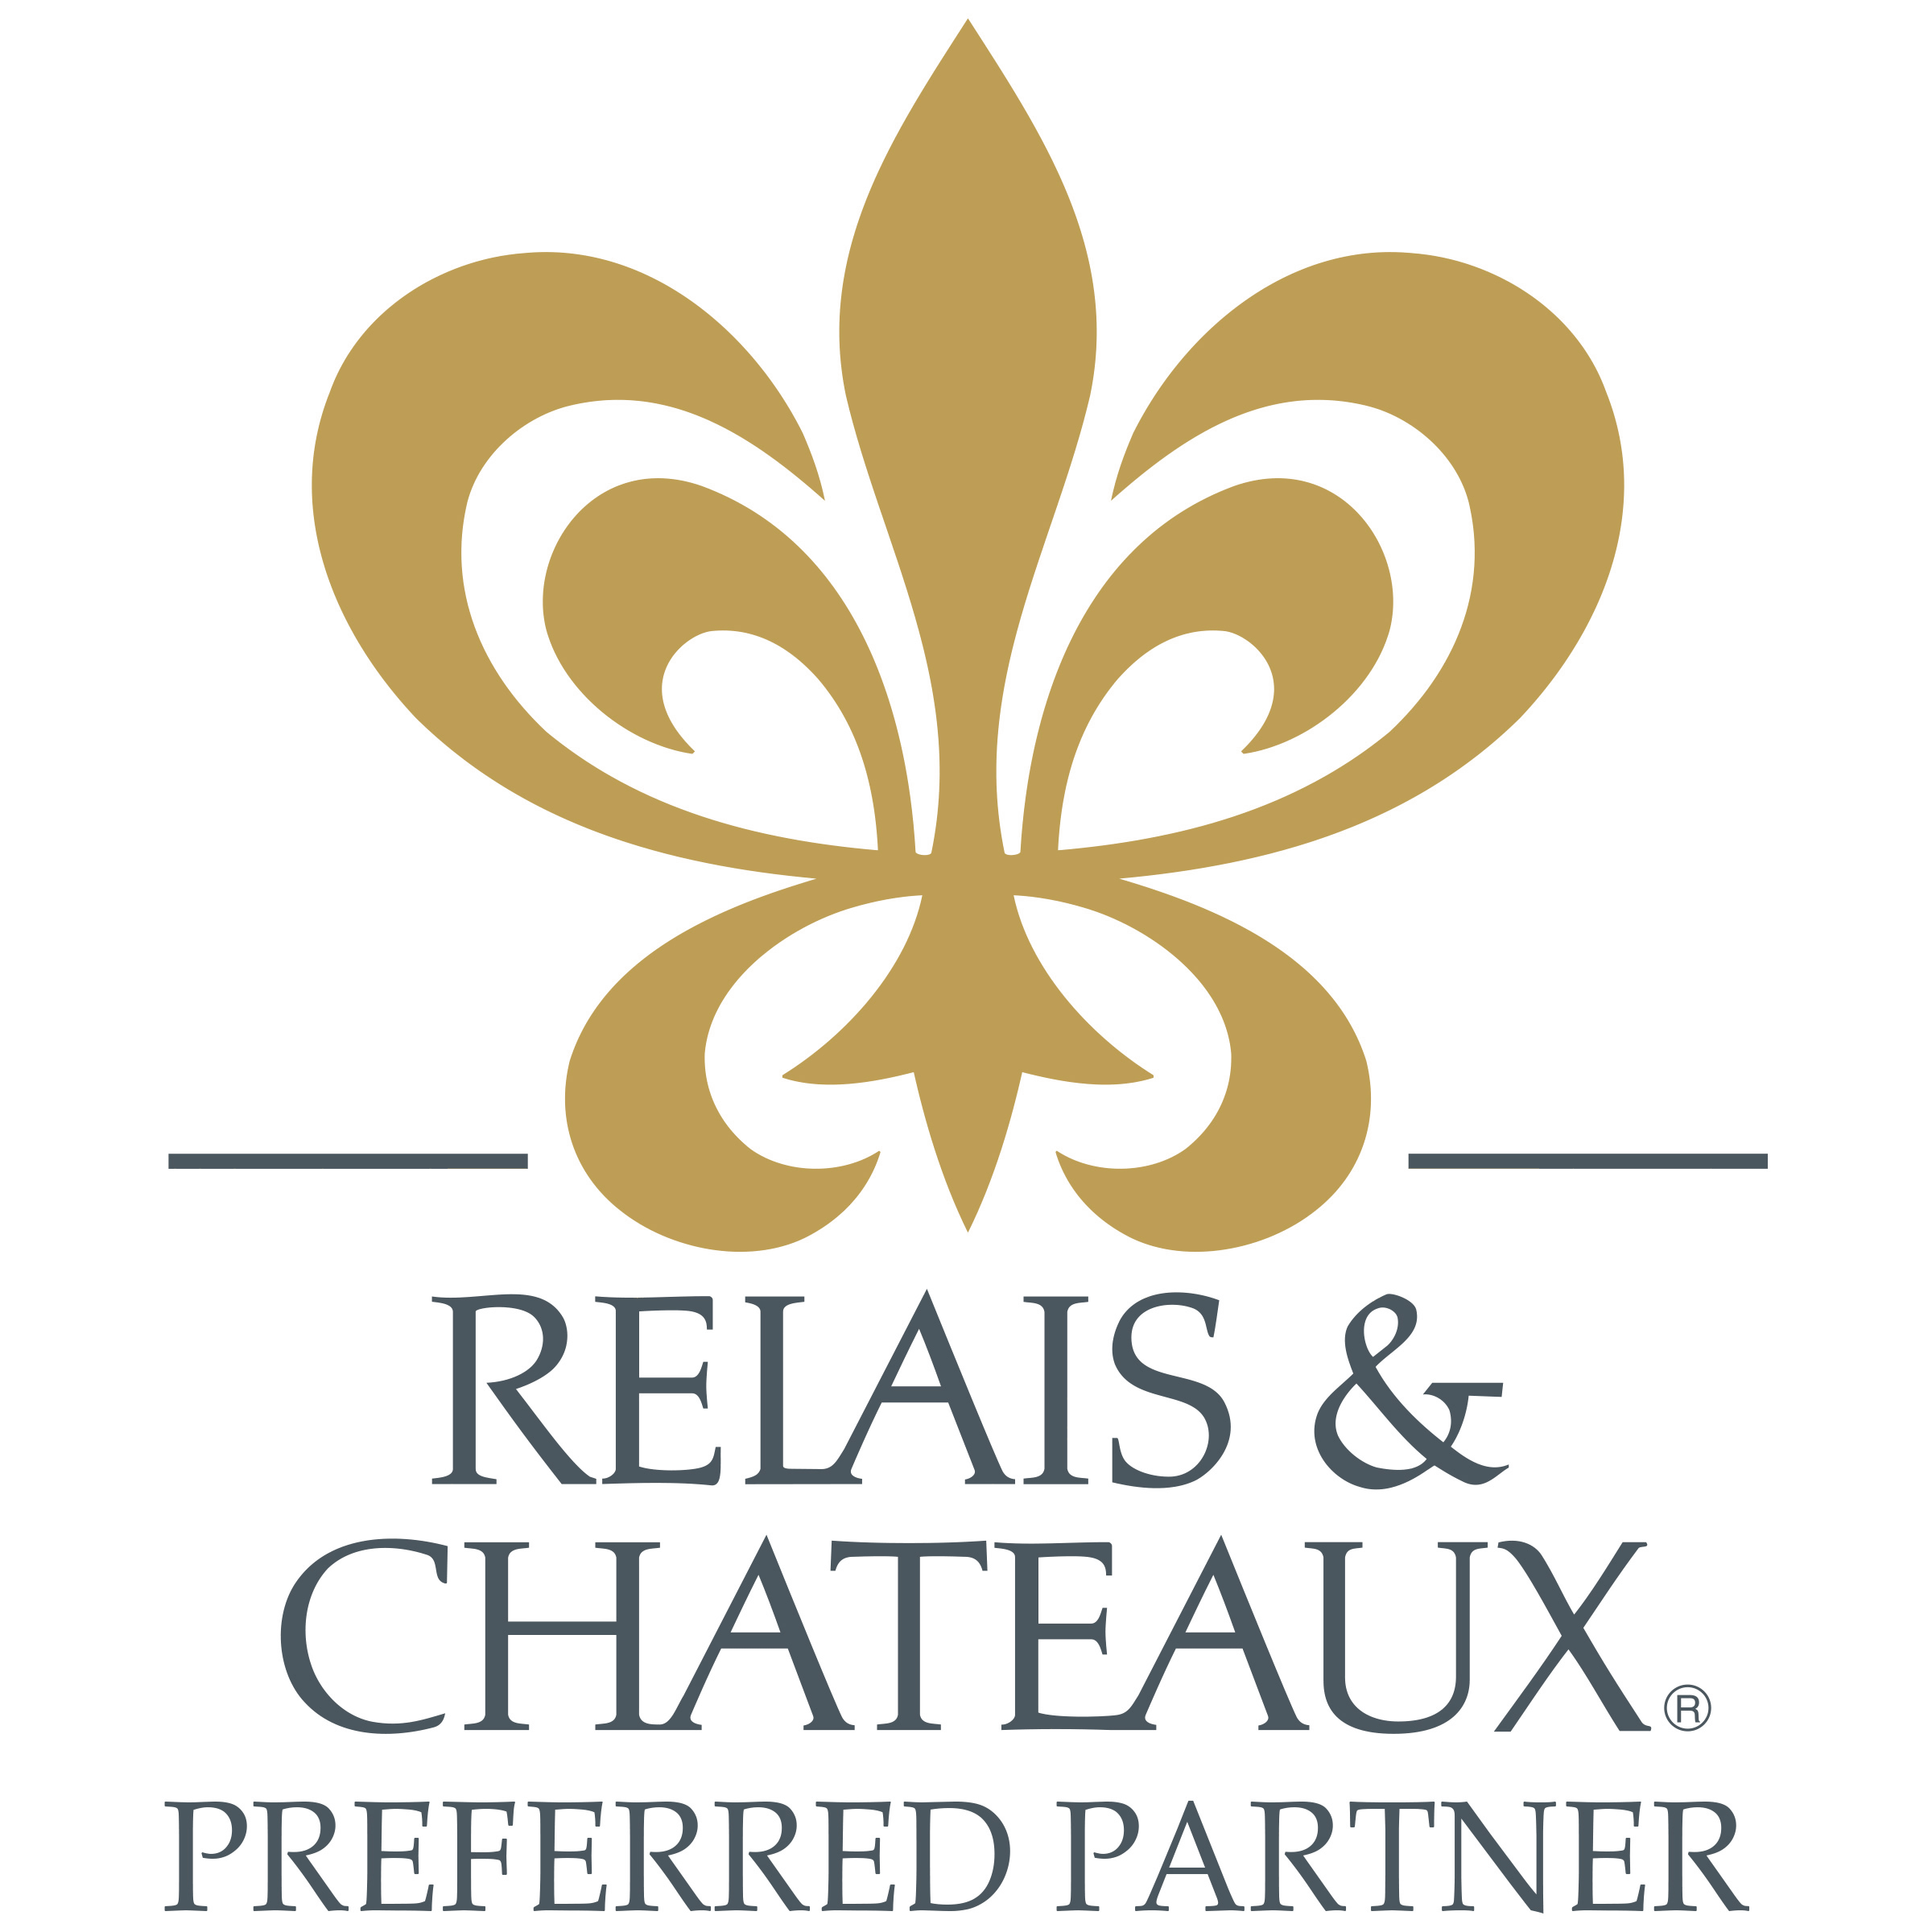 Relais & Chateaux Preferred Partner Program